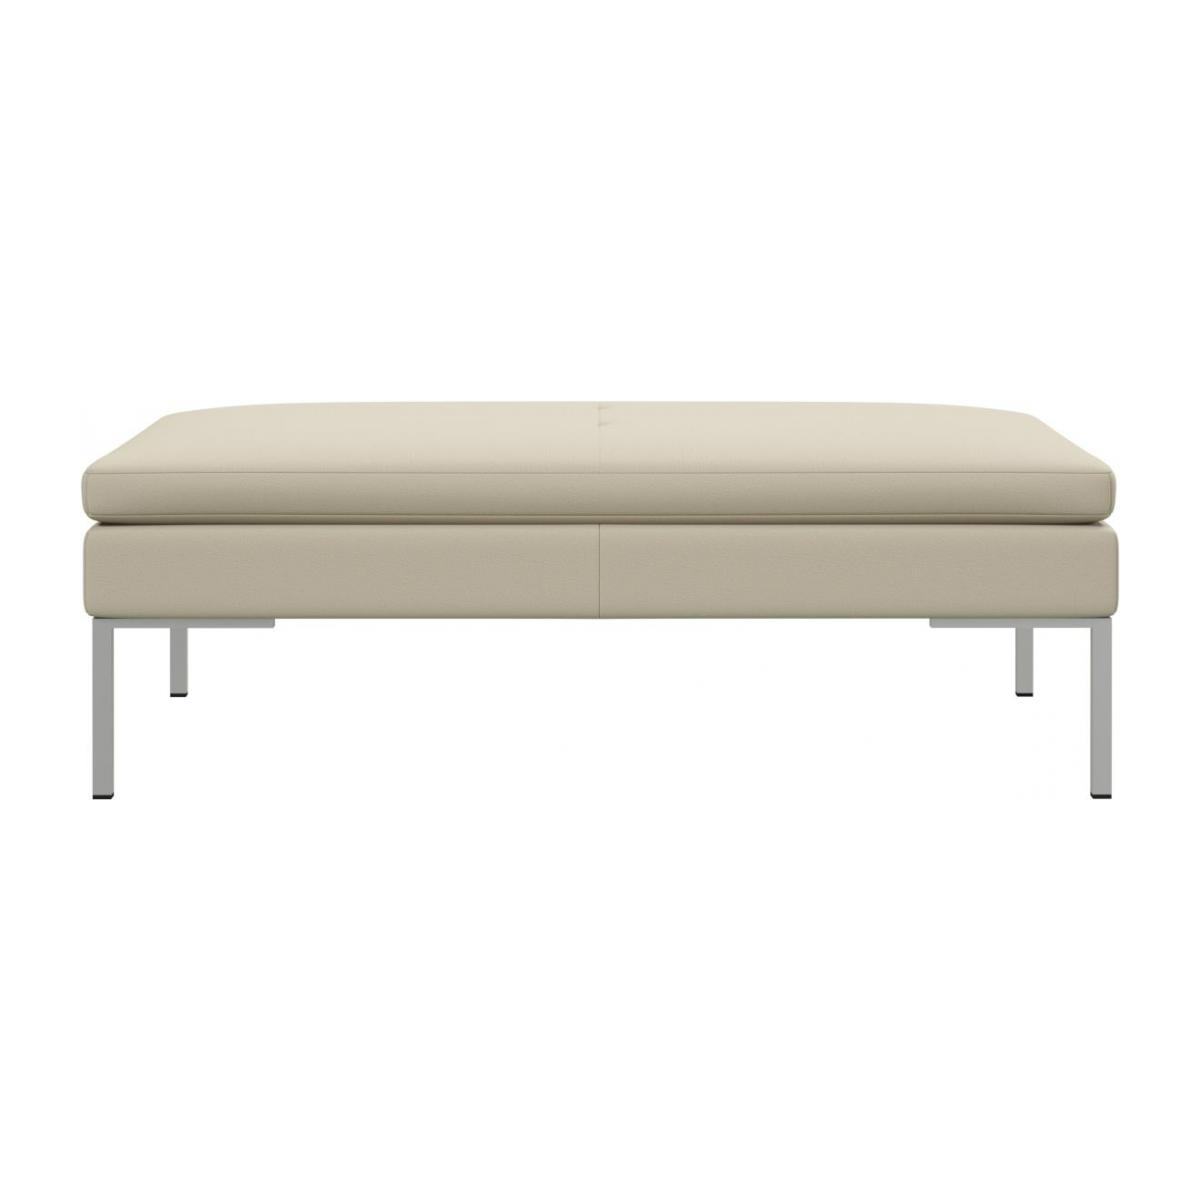 Footstool in Savoy semi-aniline leather, off white n°2